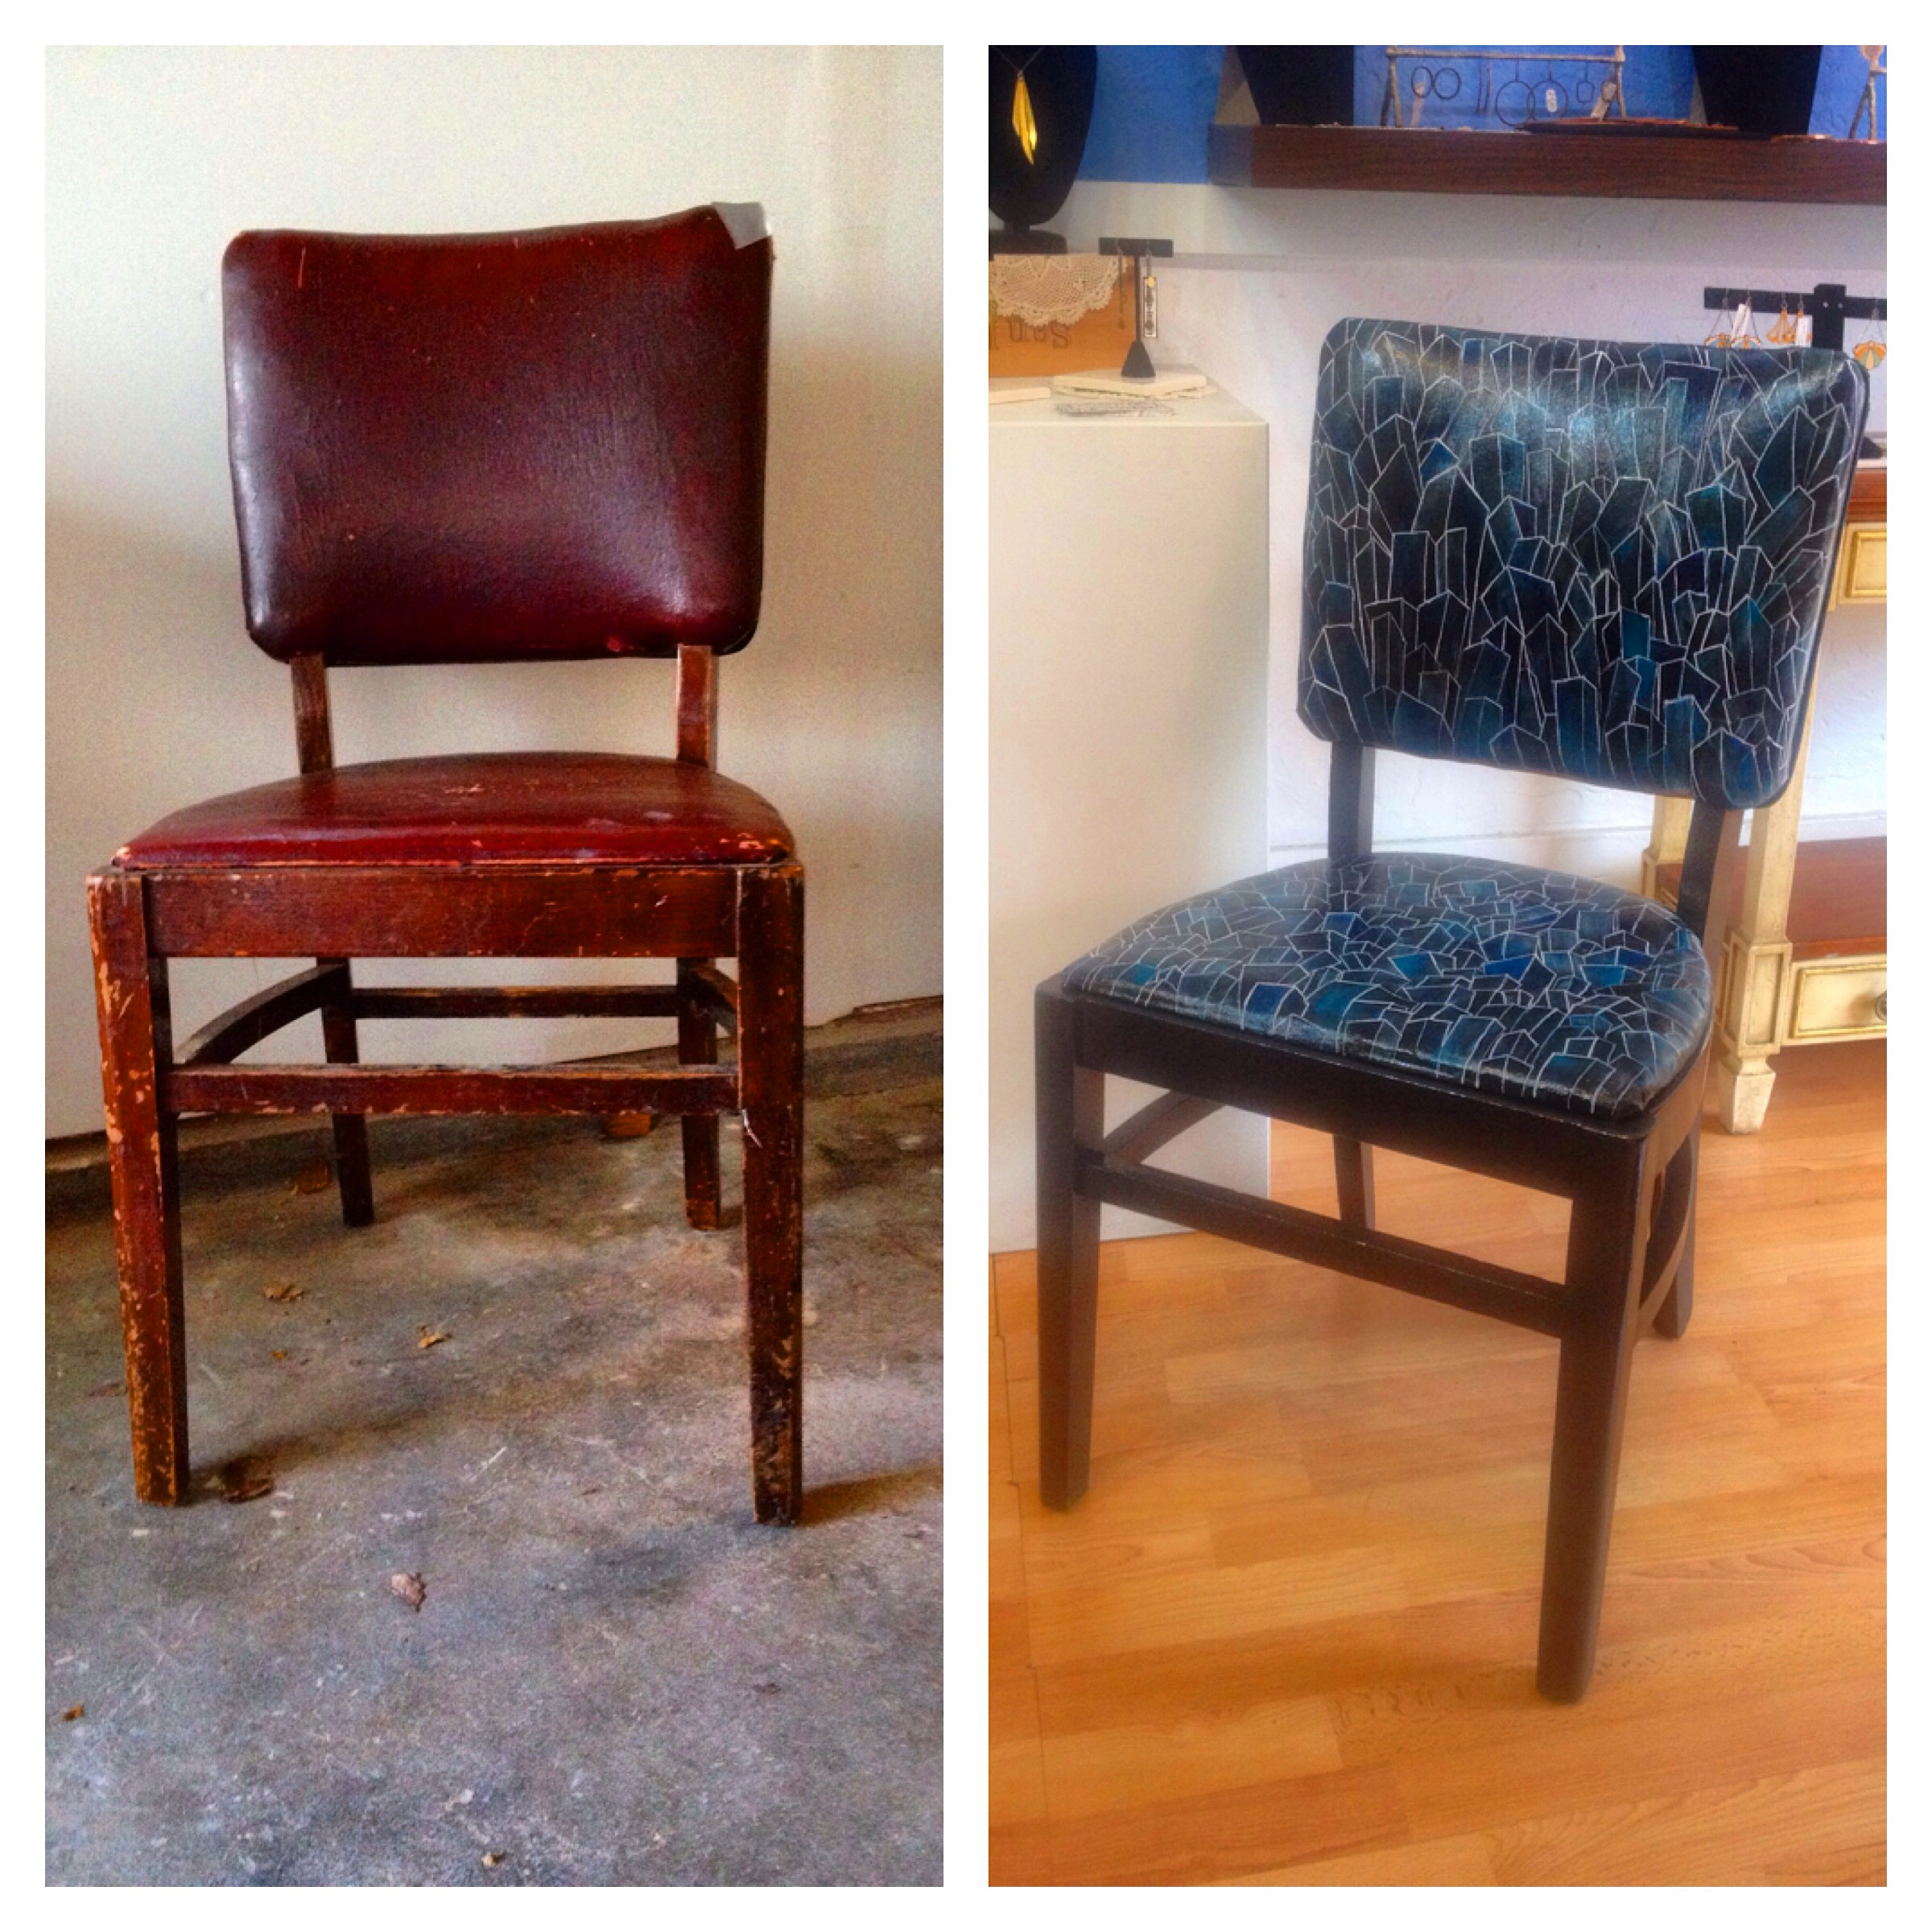 Not a bad transformation for a little elbow grease and paint, eh? You can see it in person on April 17th at the Left Bank Annex in Portland on the Artist's Night or buy a ticket and attend the main eventon April, 18th. You can also see my chair from 2013  here.